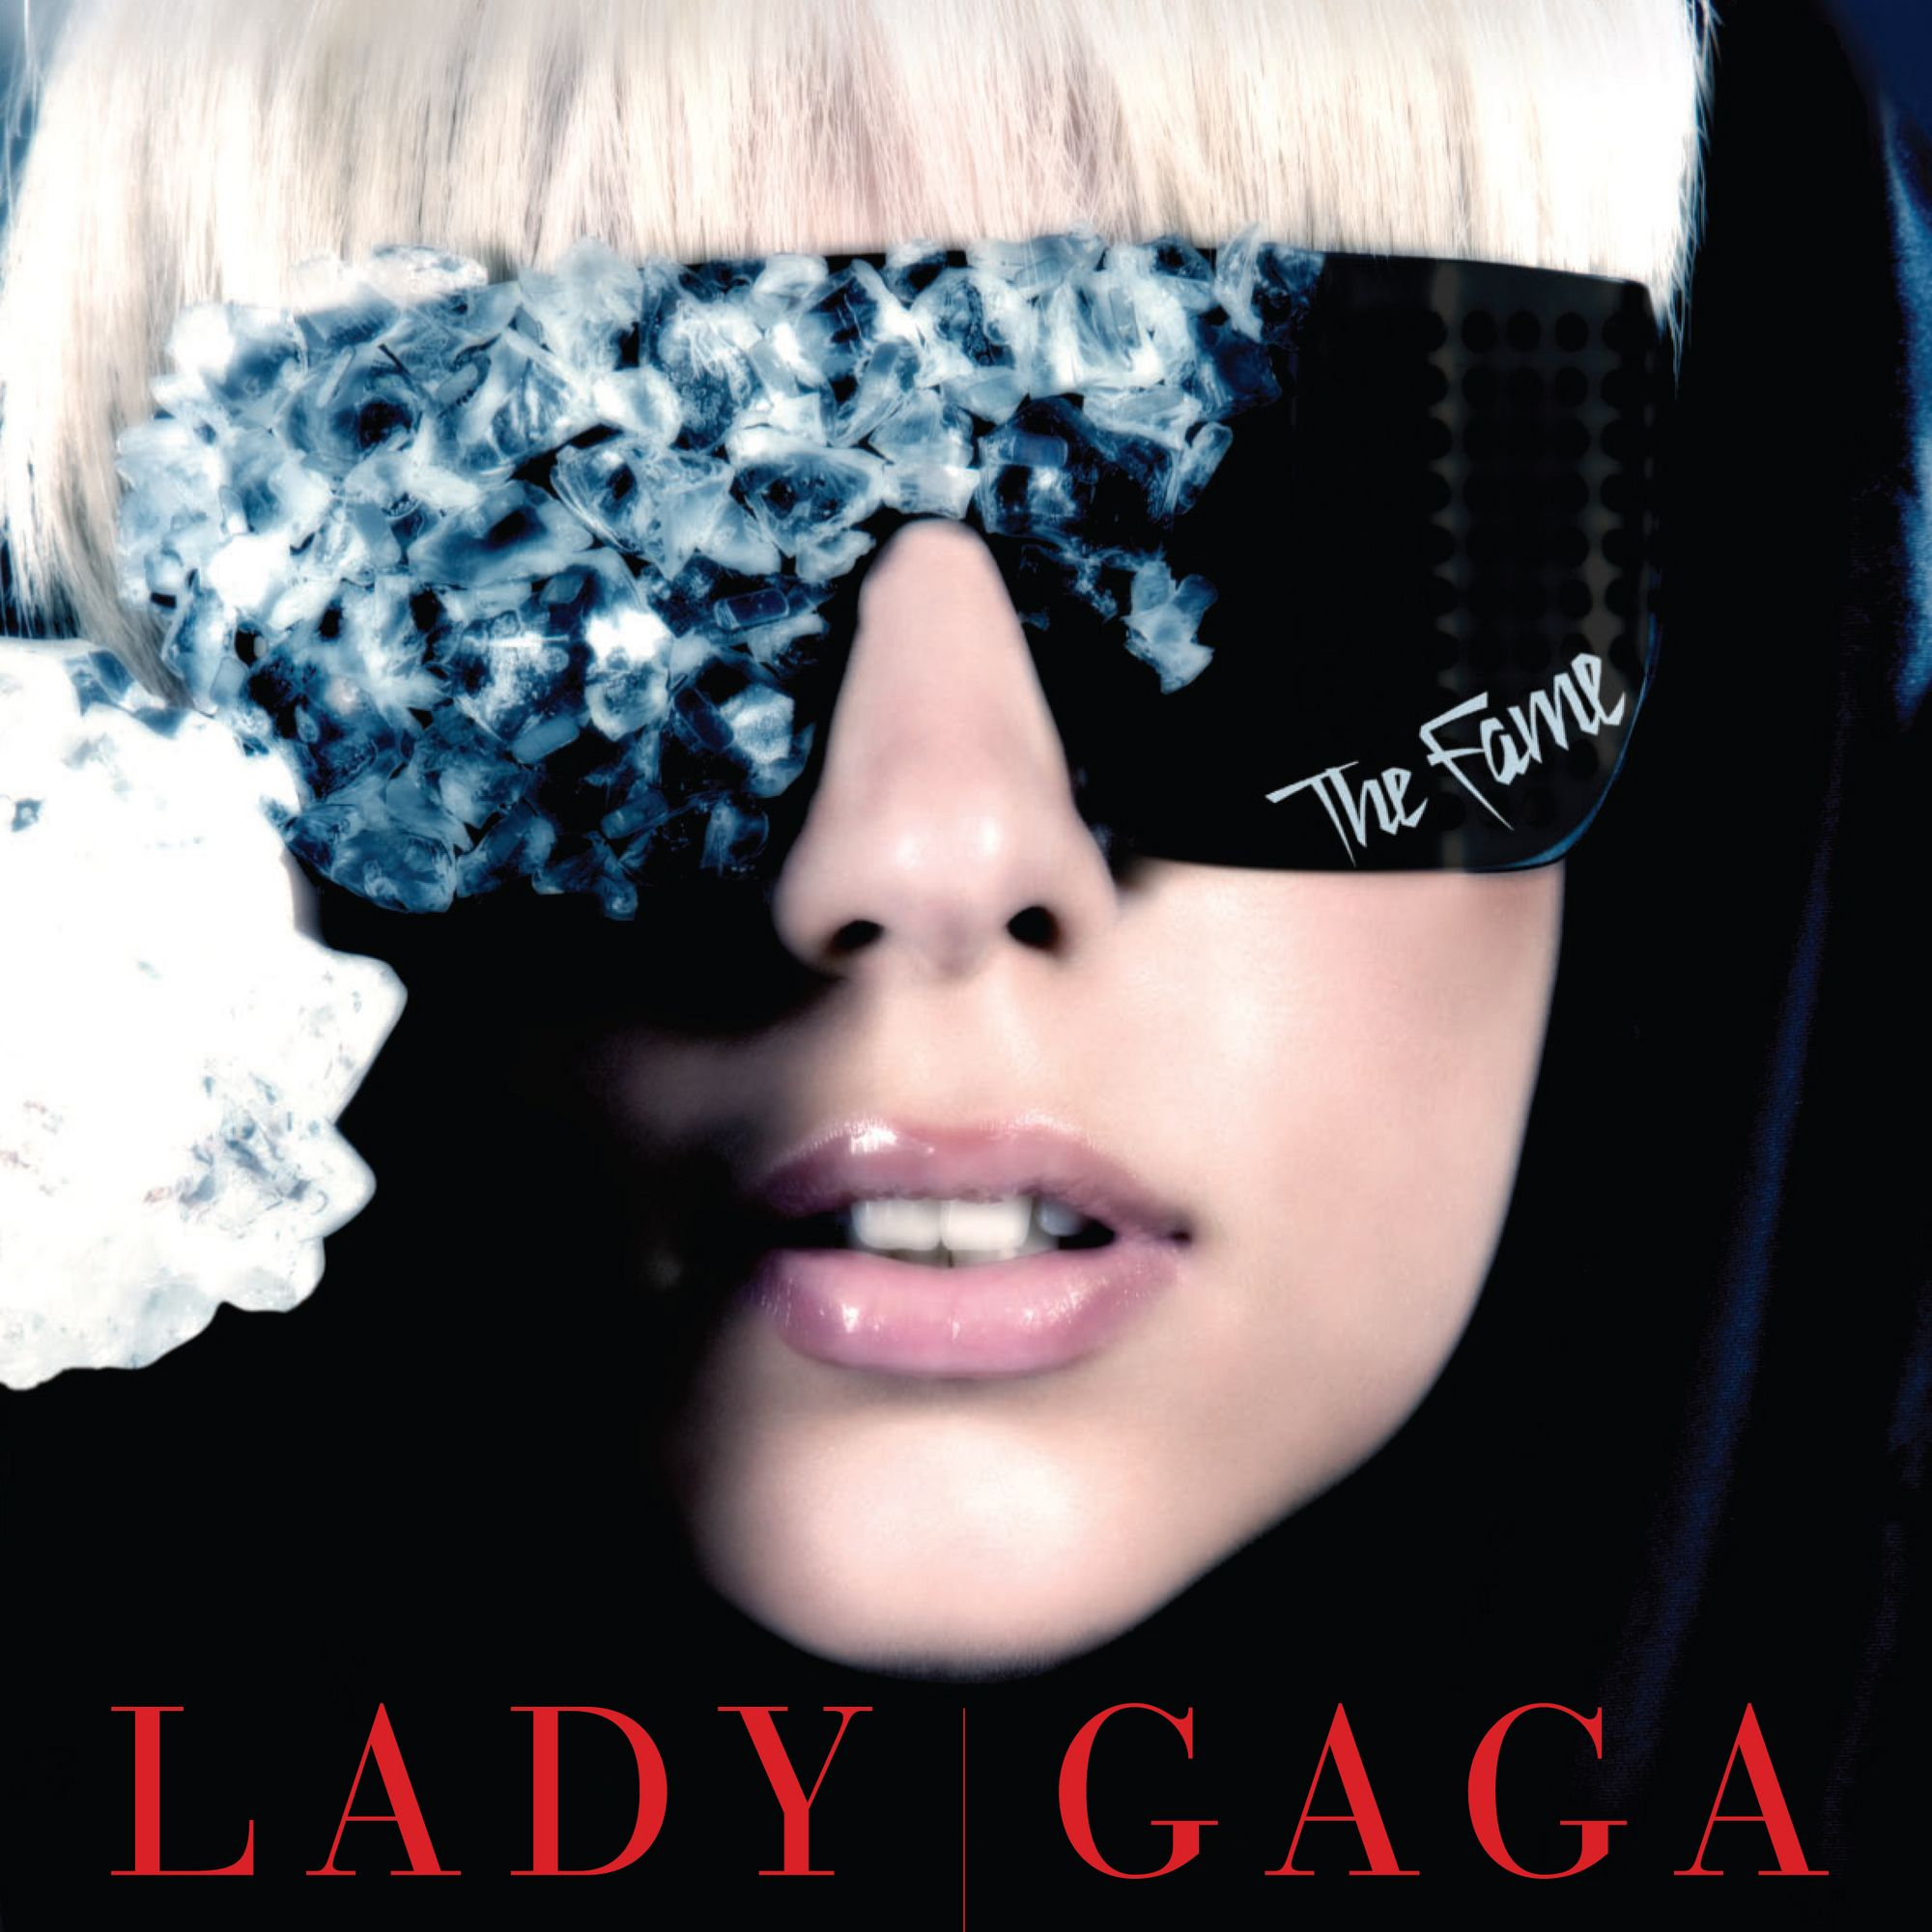 Lady GaGa - The Fame album cover